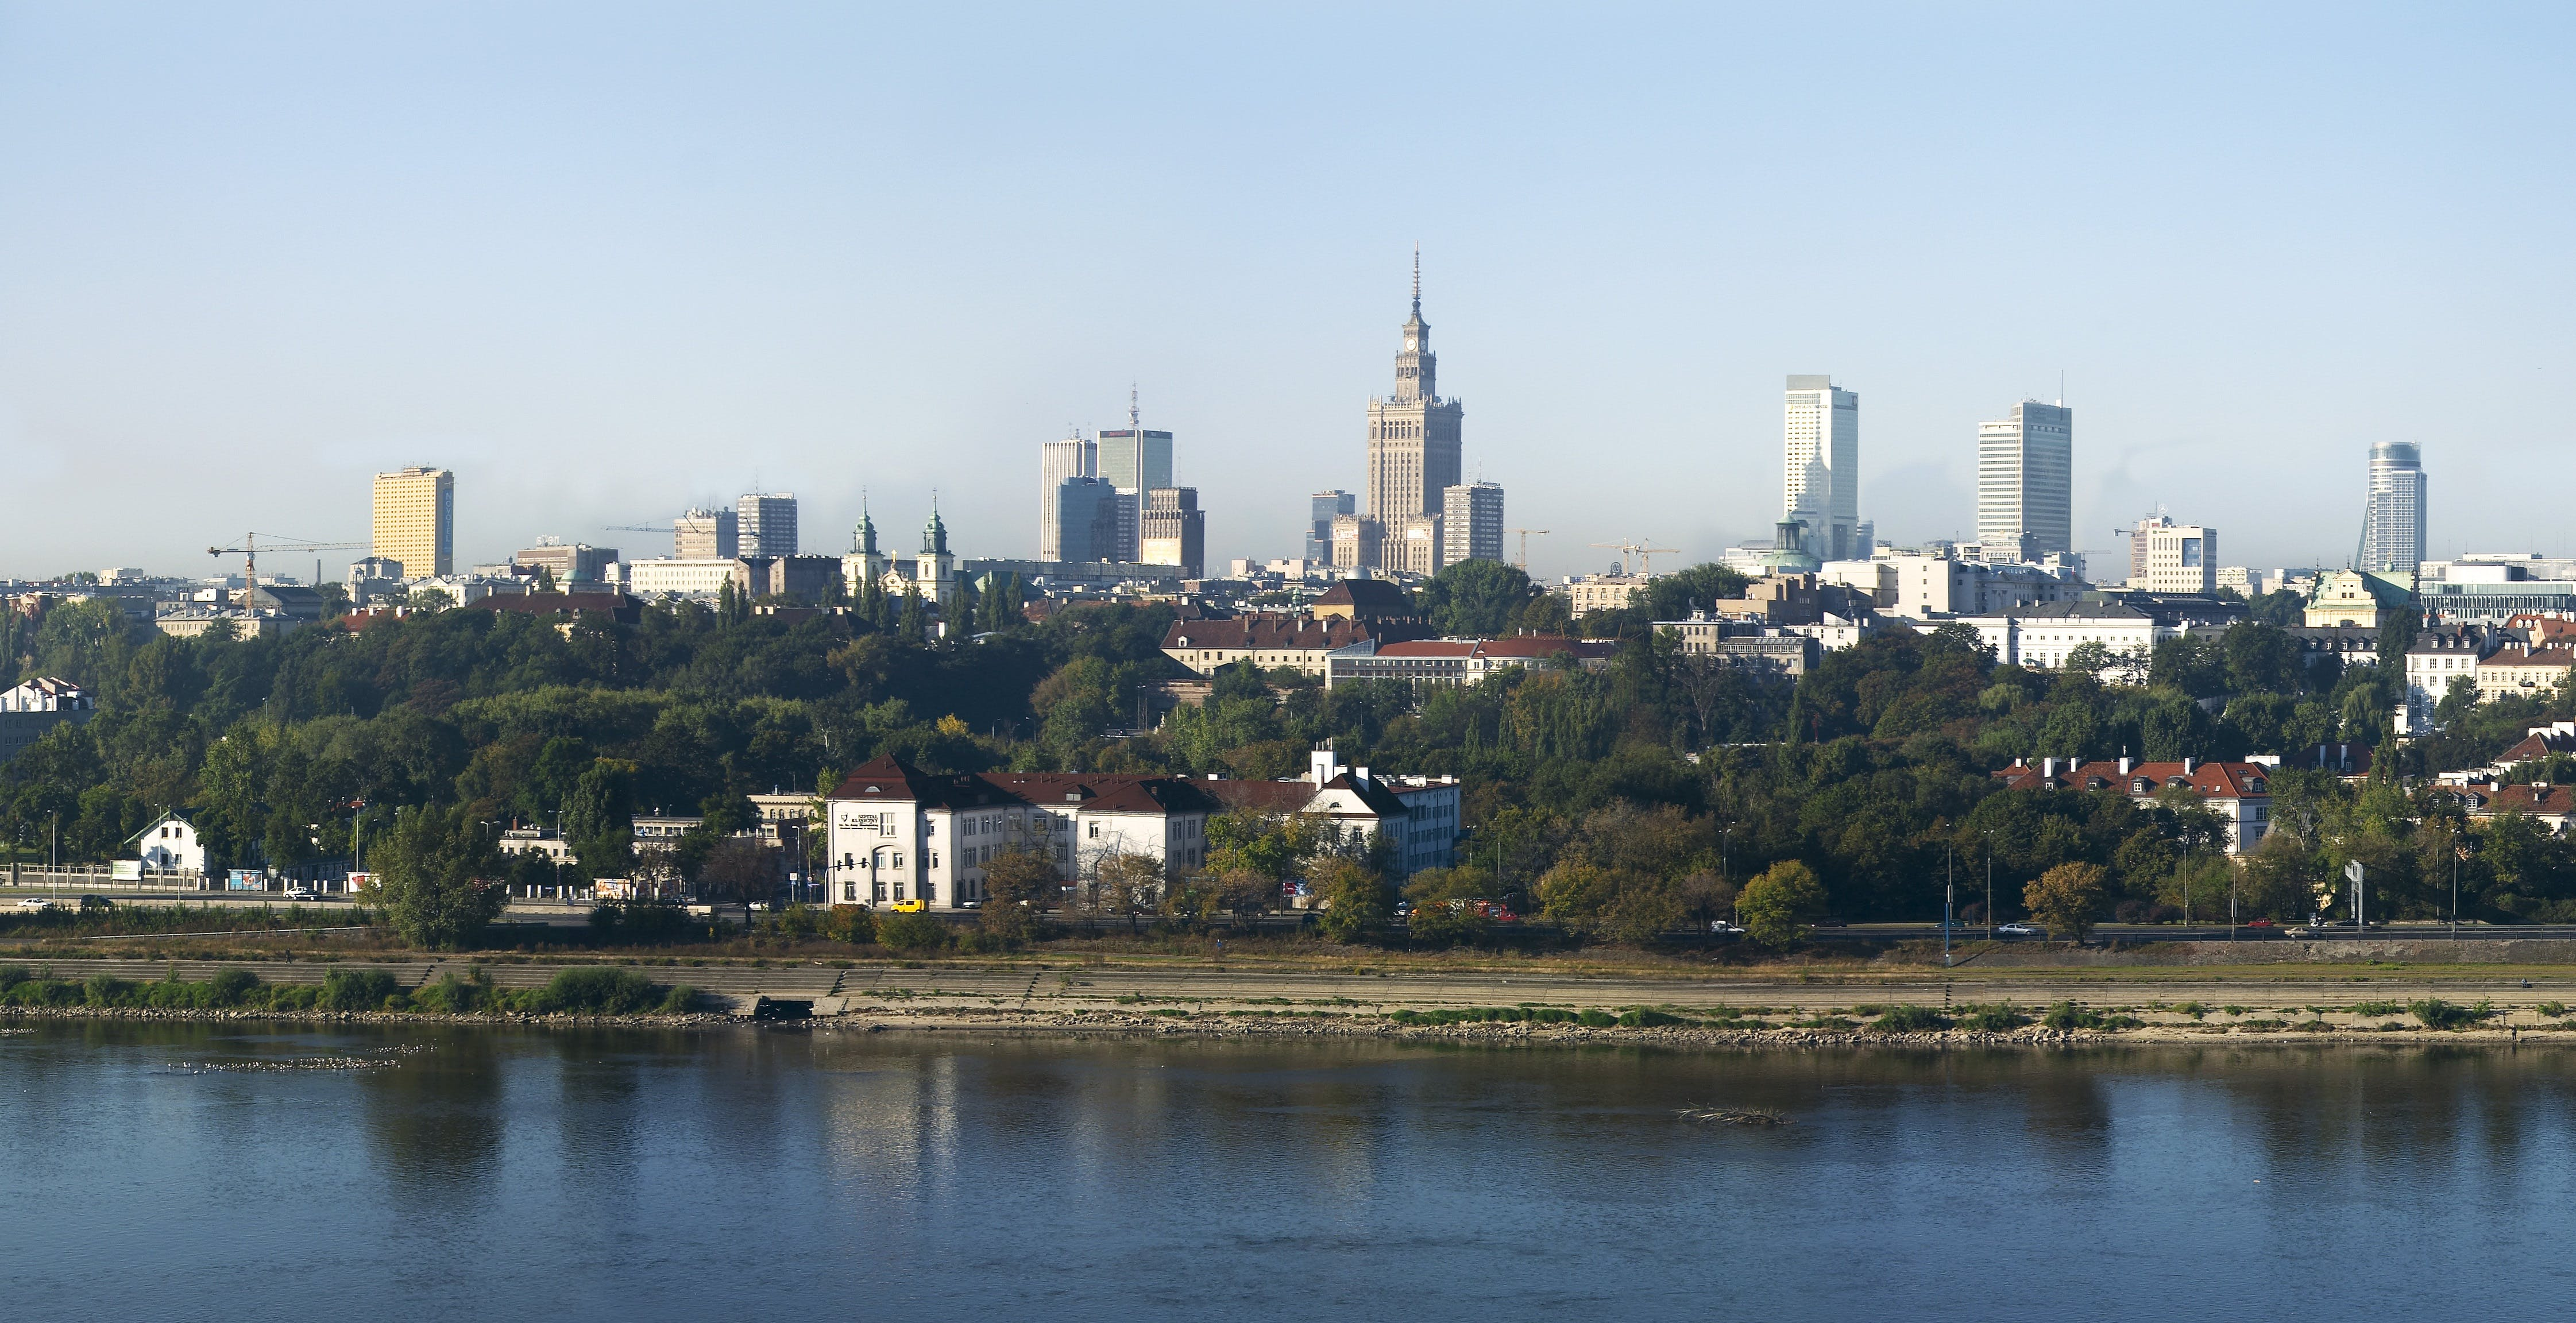 View of City by Lake Against Clear Sky